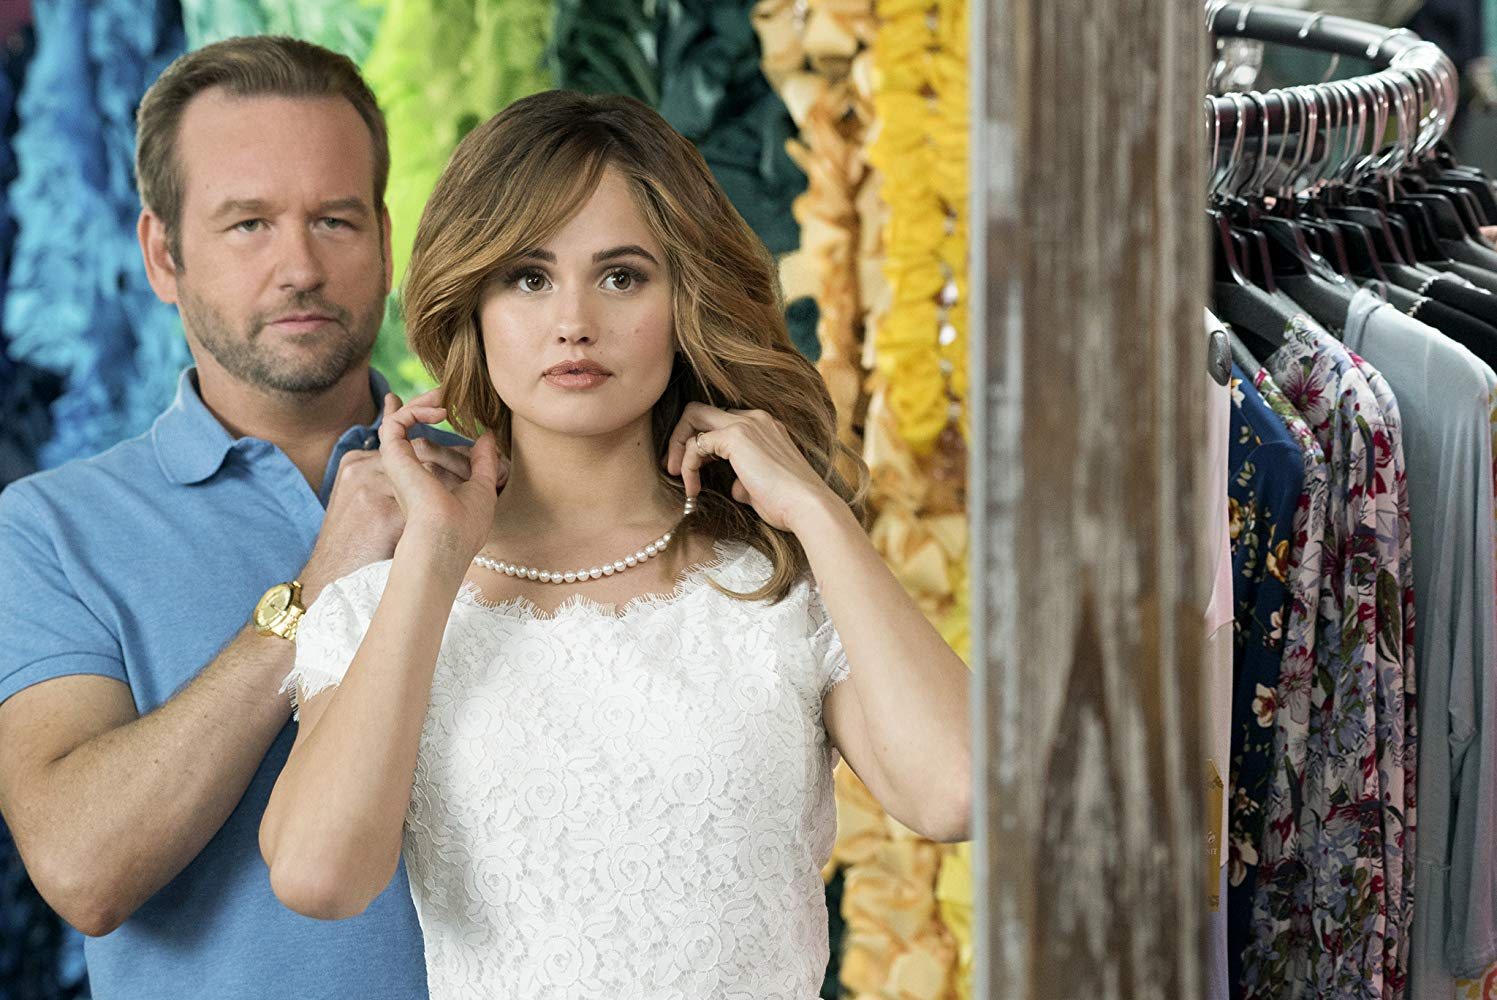 Insatiable: Debby Ryan e Dallas Roberts in una scena della serie